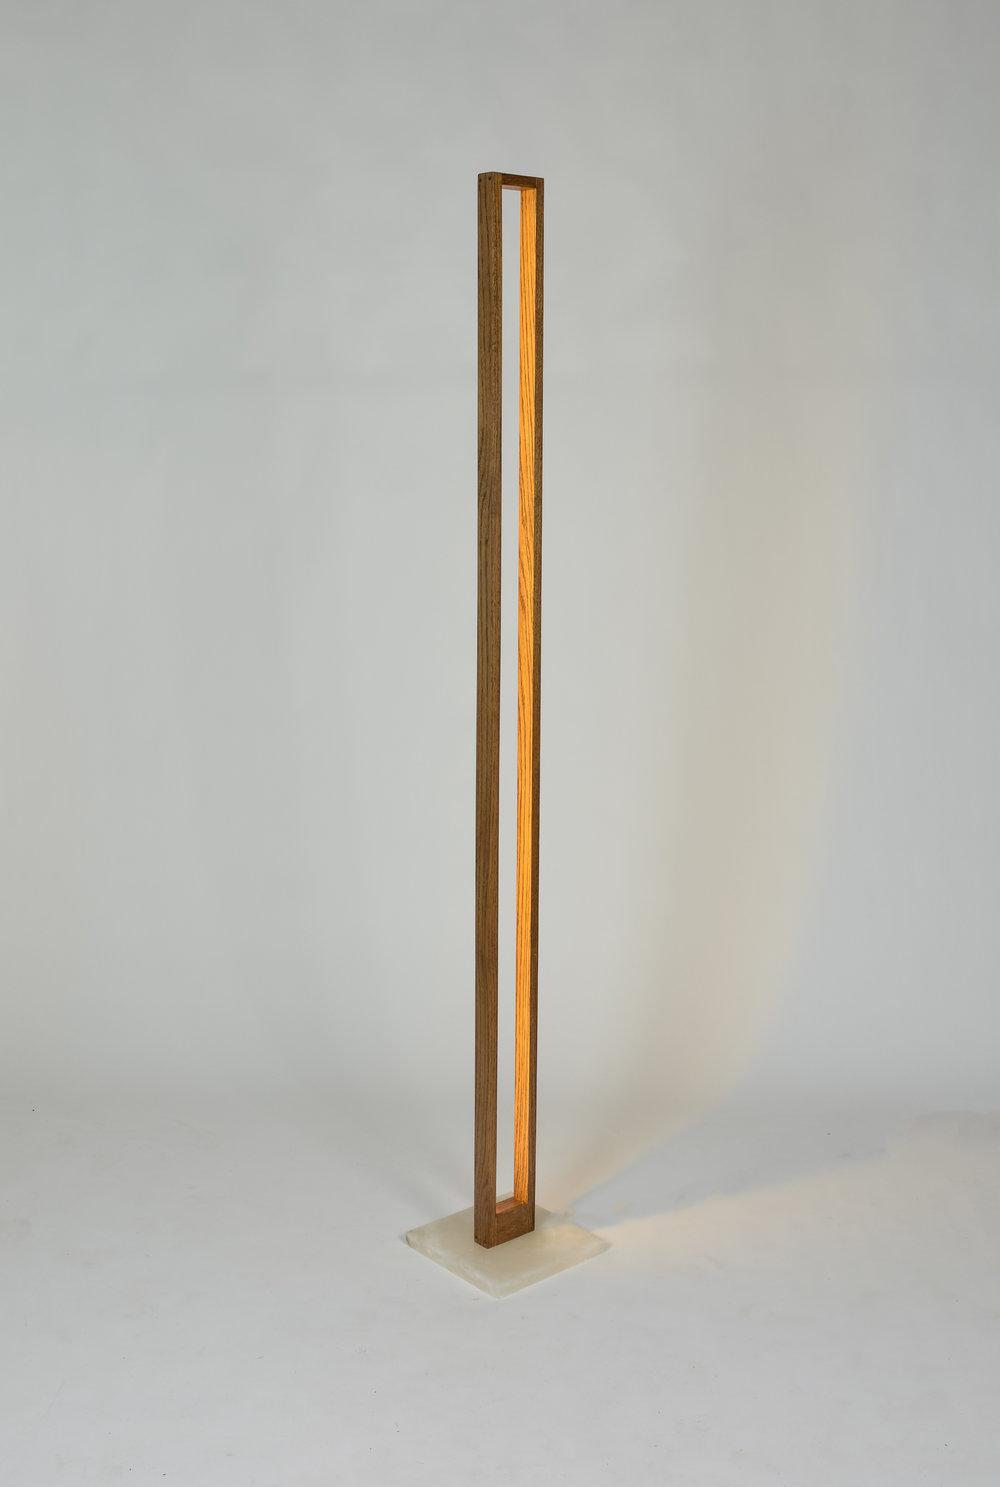 BEACON - Slender floor lamp made with oak wood, alabaster, and warm dimmable LEDs that are rated for 30,000 hours. The LEDs are oriented to provide a back-lit illumination, providing a warm ambience to a room environment.Dimensions: 64